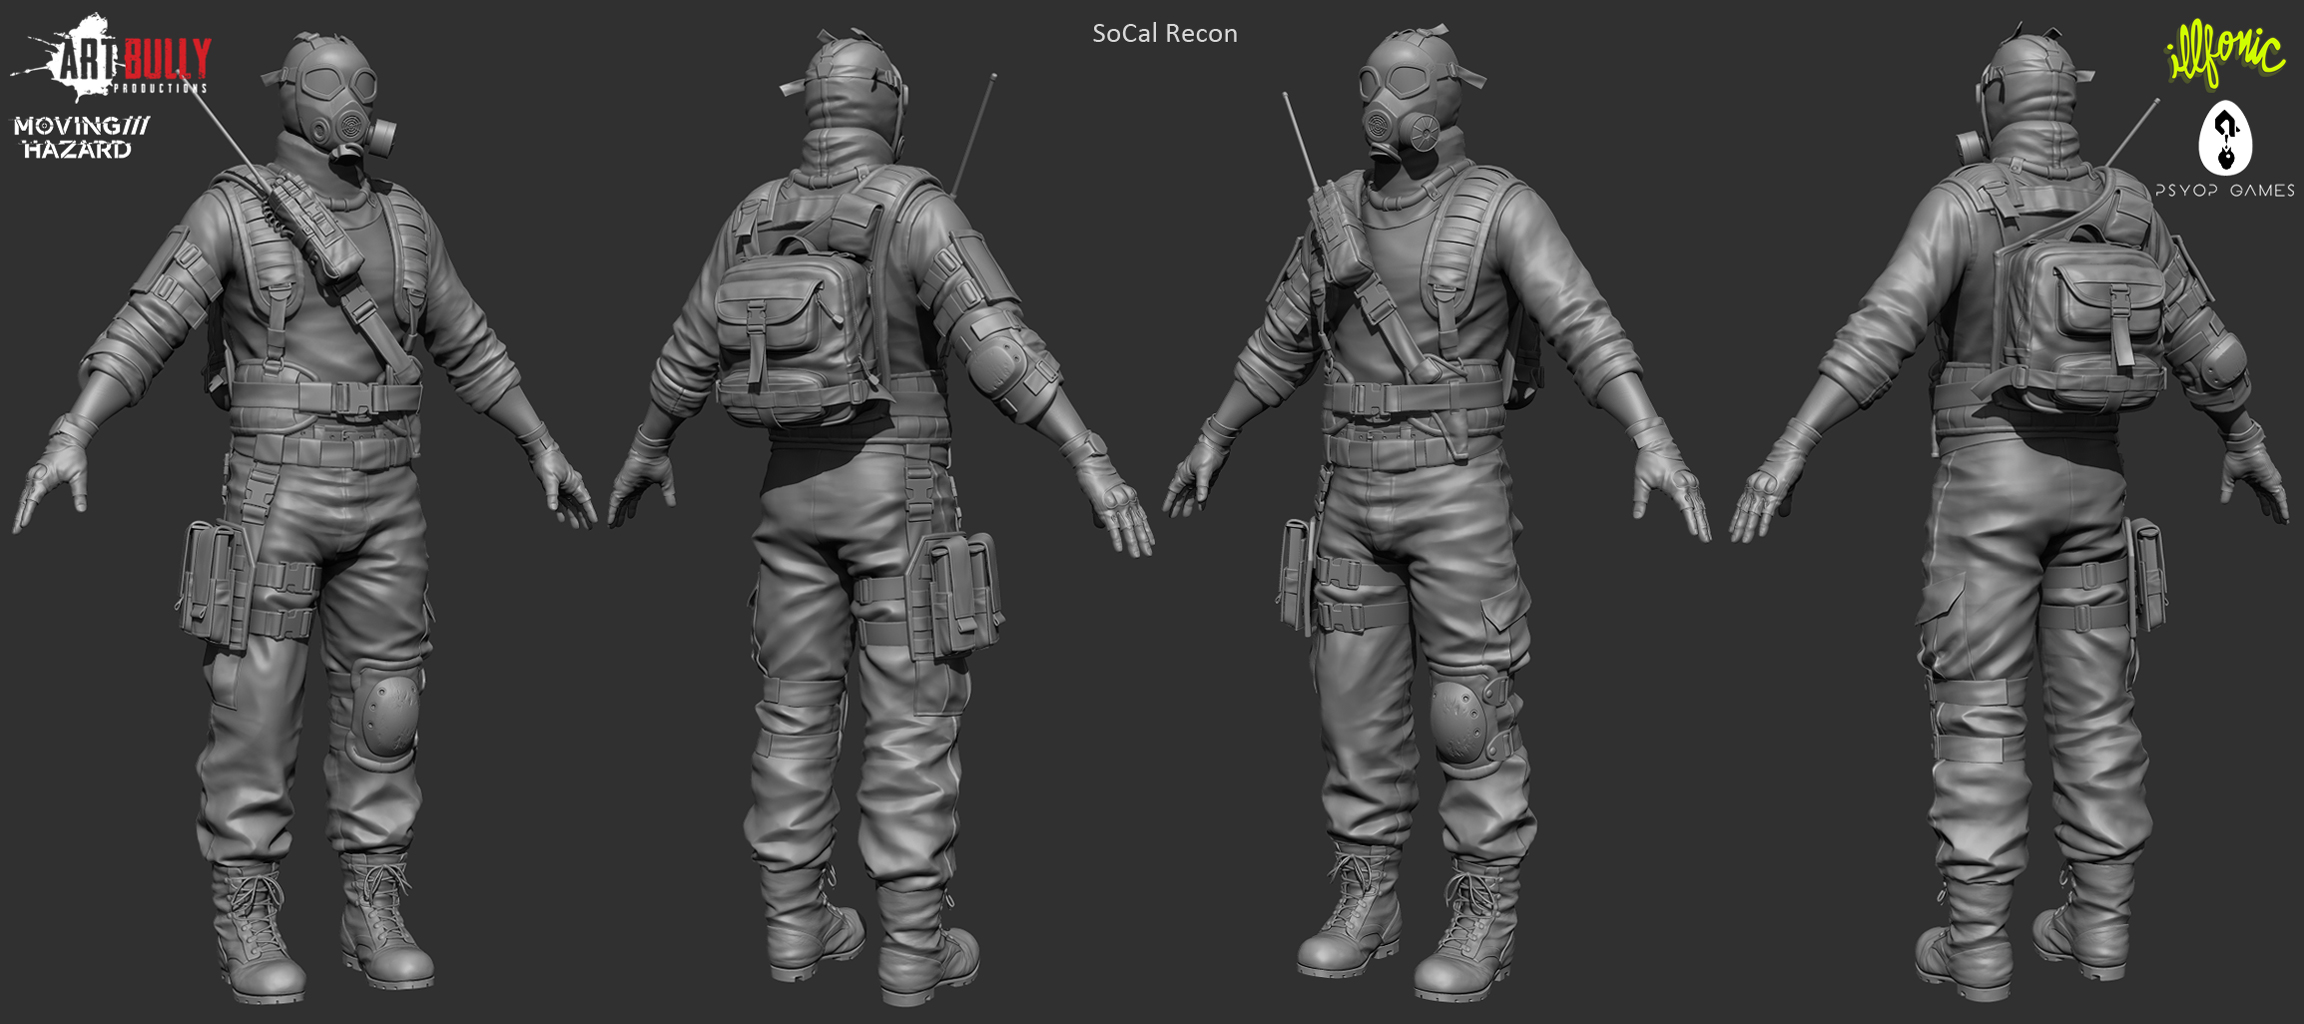 SoCal_Recon_Sculpt_Render_01.jpg